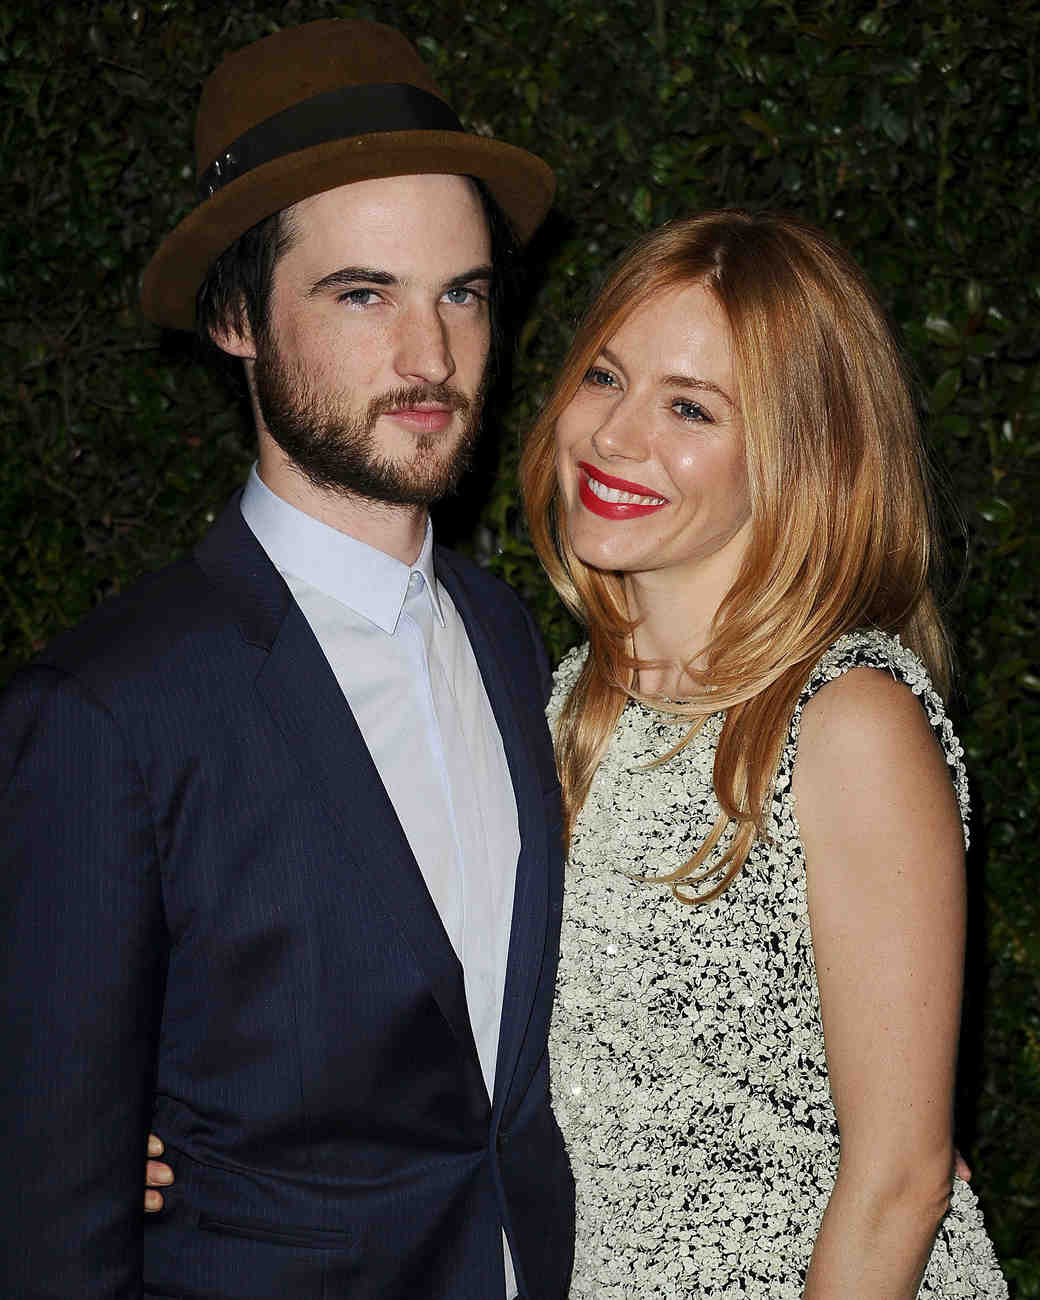 robert-pattinson-fka-twigs-guests-sienna-miller-tom-sturridge-getty-0415.jpg